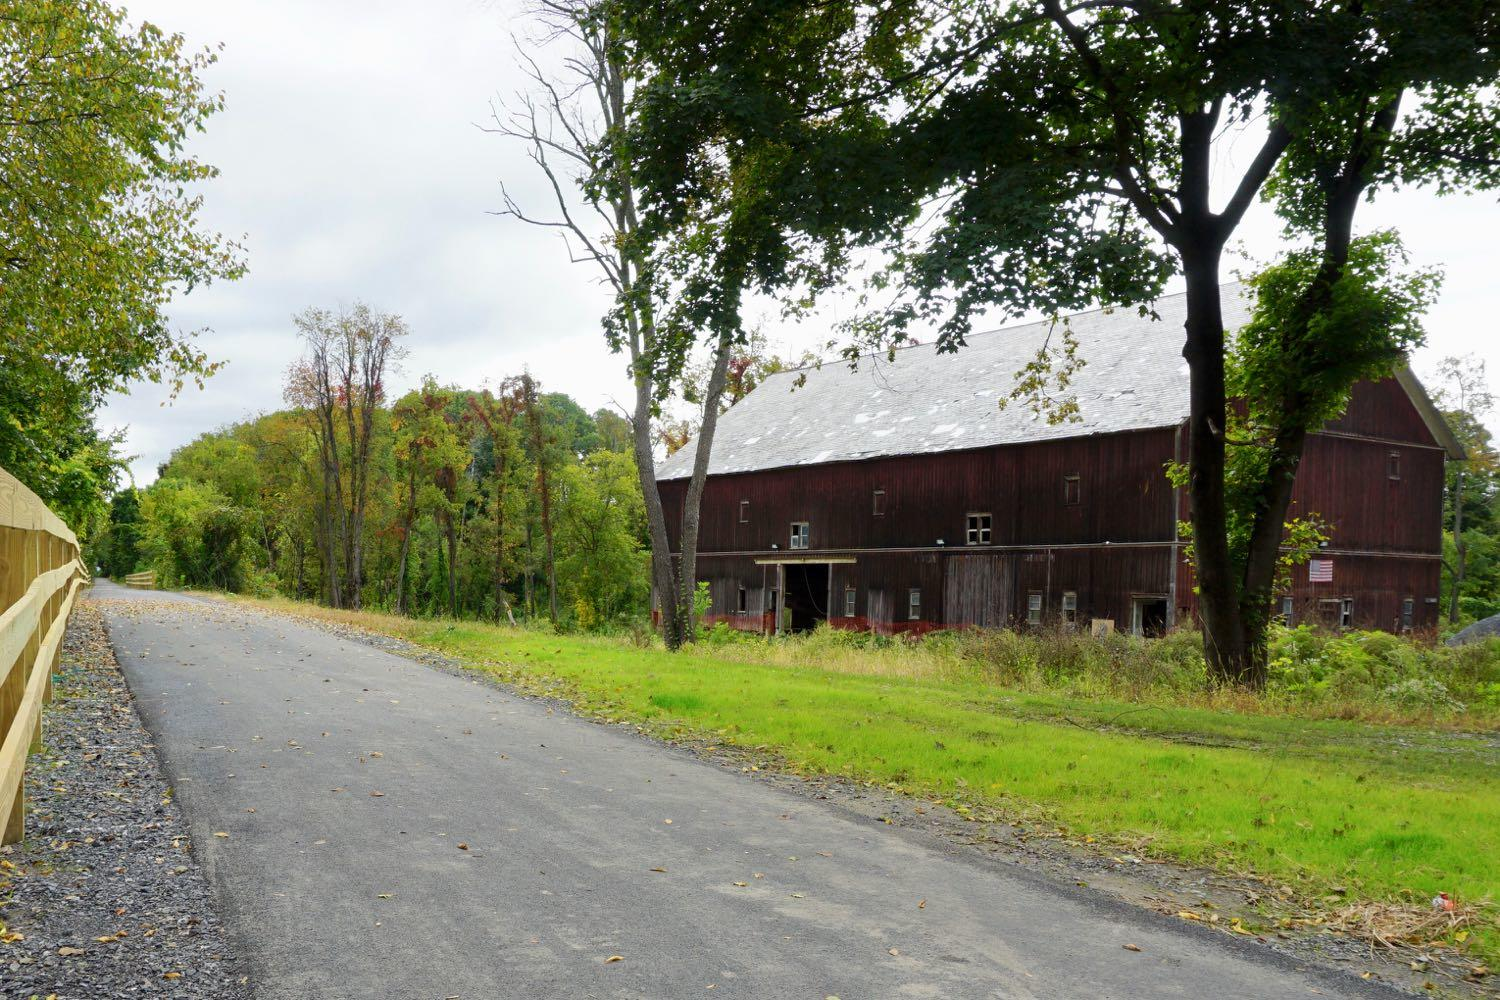 Hilton Barn next to the rail trail